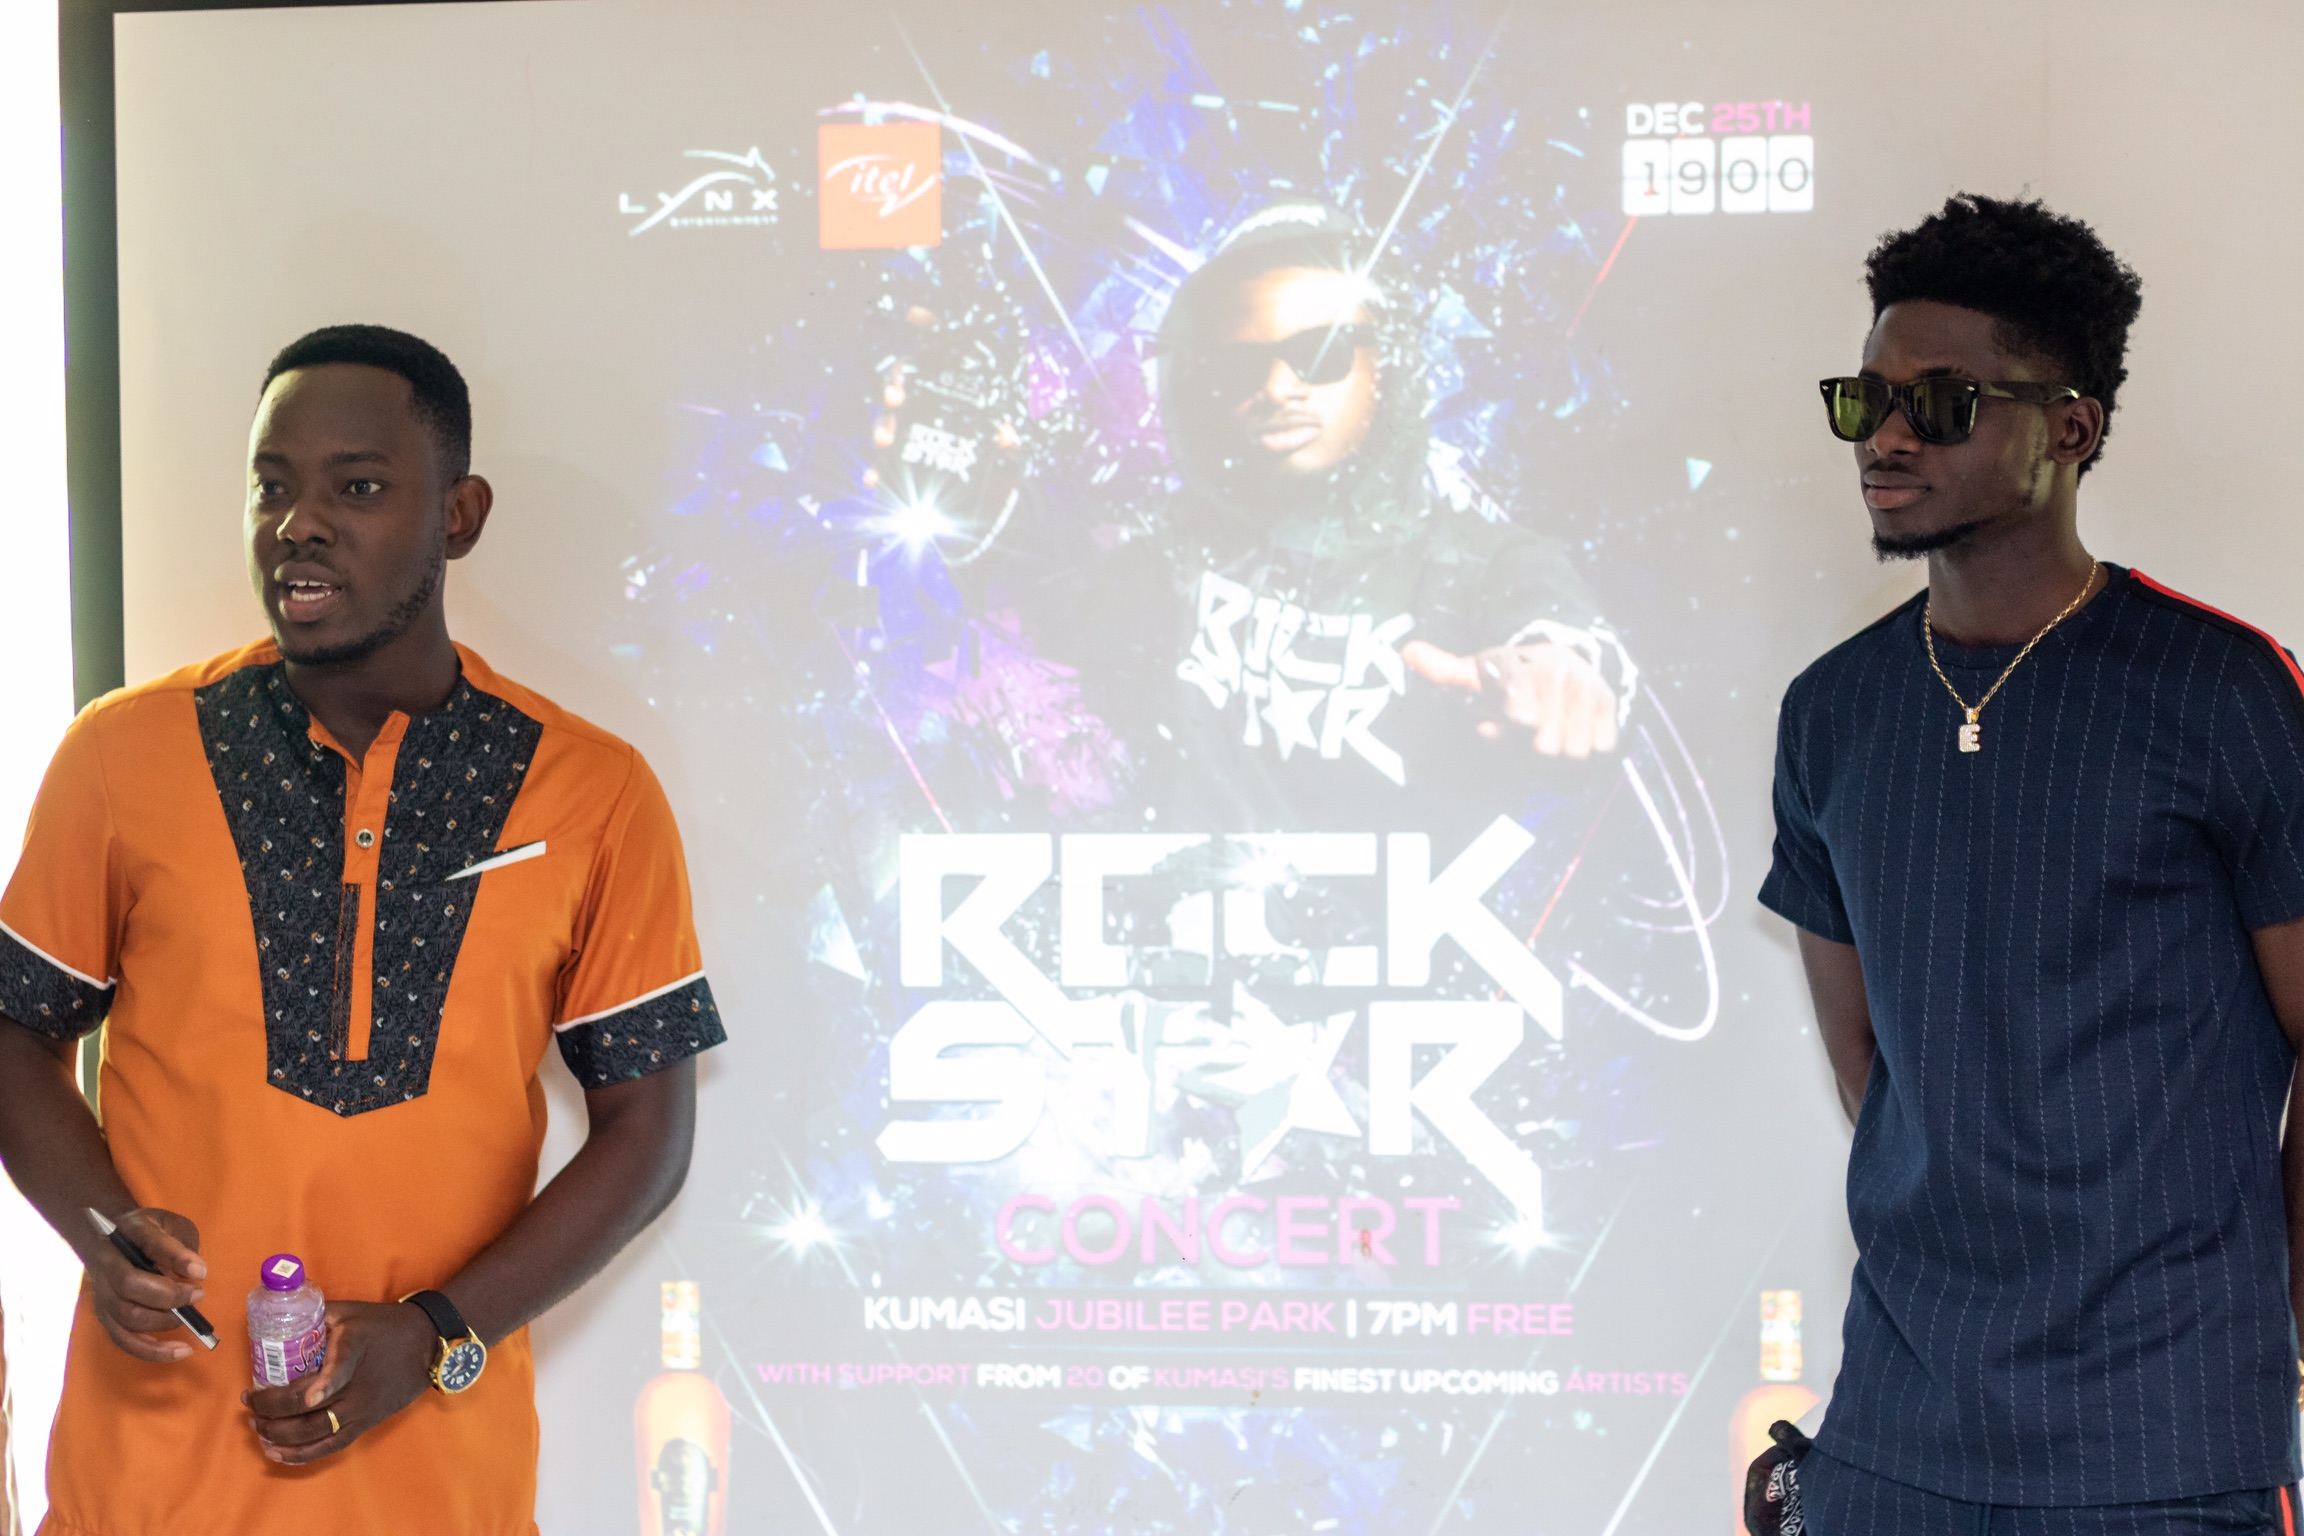 Kuami Eugene Invades Kumasi With Rockstar Concert '19 Plus Free Health Screening On December 25